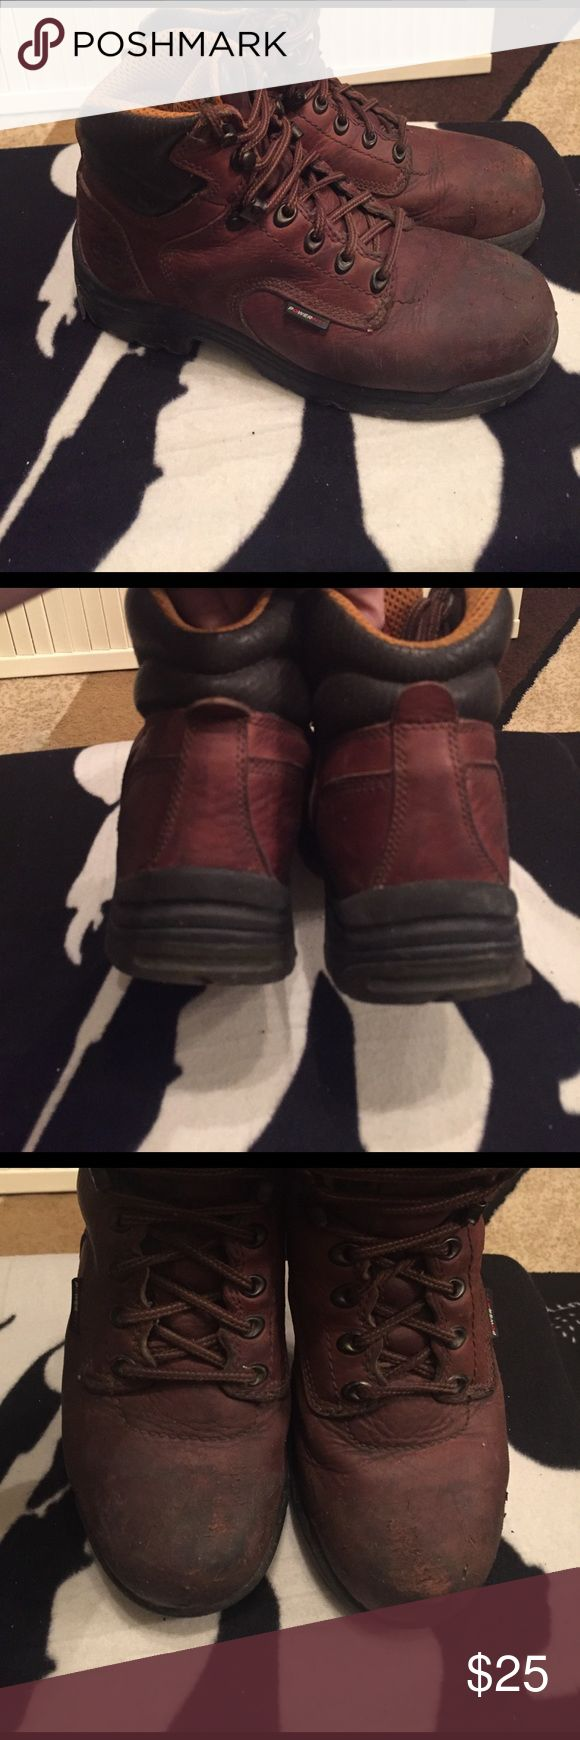 Men's Timberland PRO SERIES steel toe boots sz 8 Yea something different! These are Men's steel toe Timberland boots. They are in very good condition with the only wear noted to the toes where they could use some cleaning and polishing. They are sz 8 in men's but I wear a size 9 in women's and they fit me fine. Timberland Shoes Boots